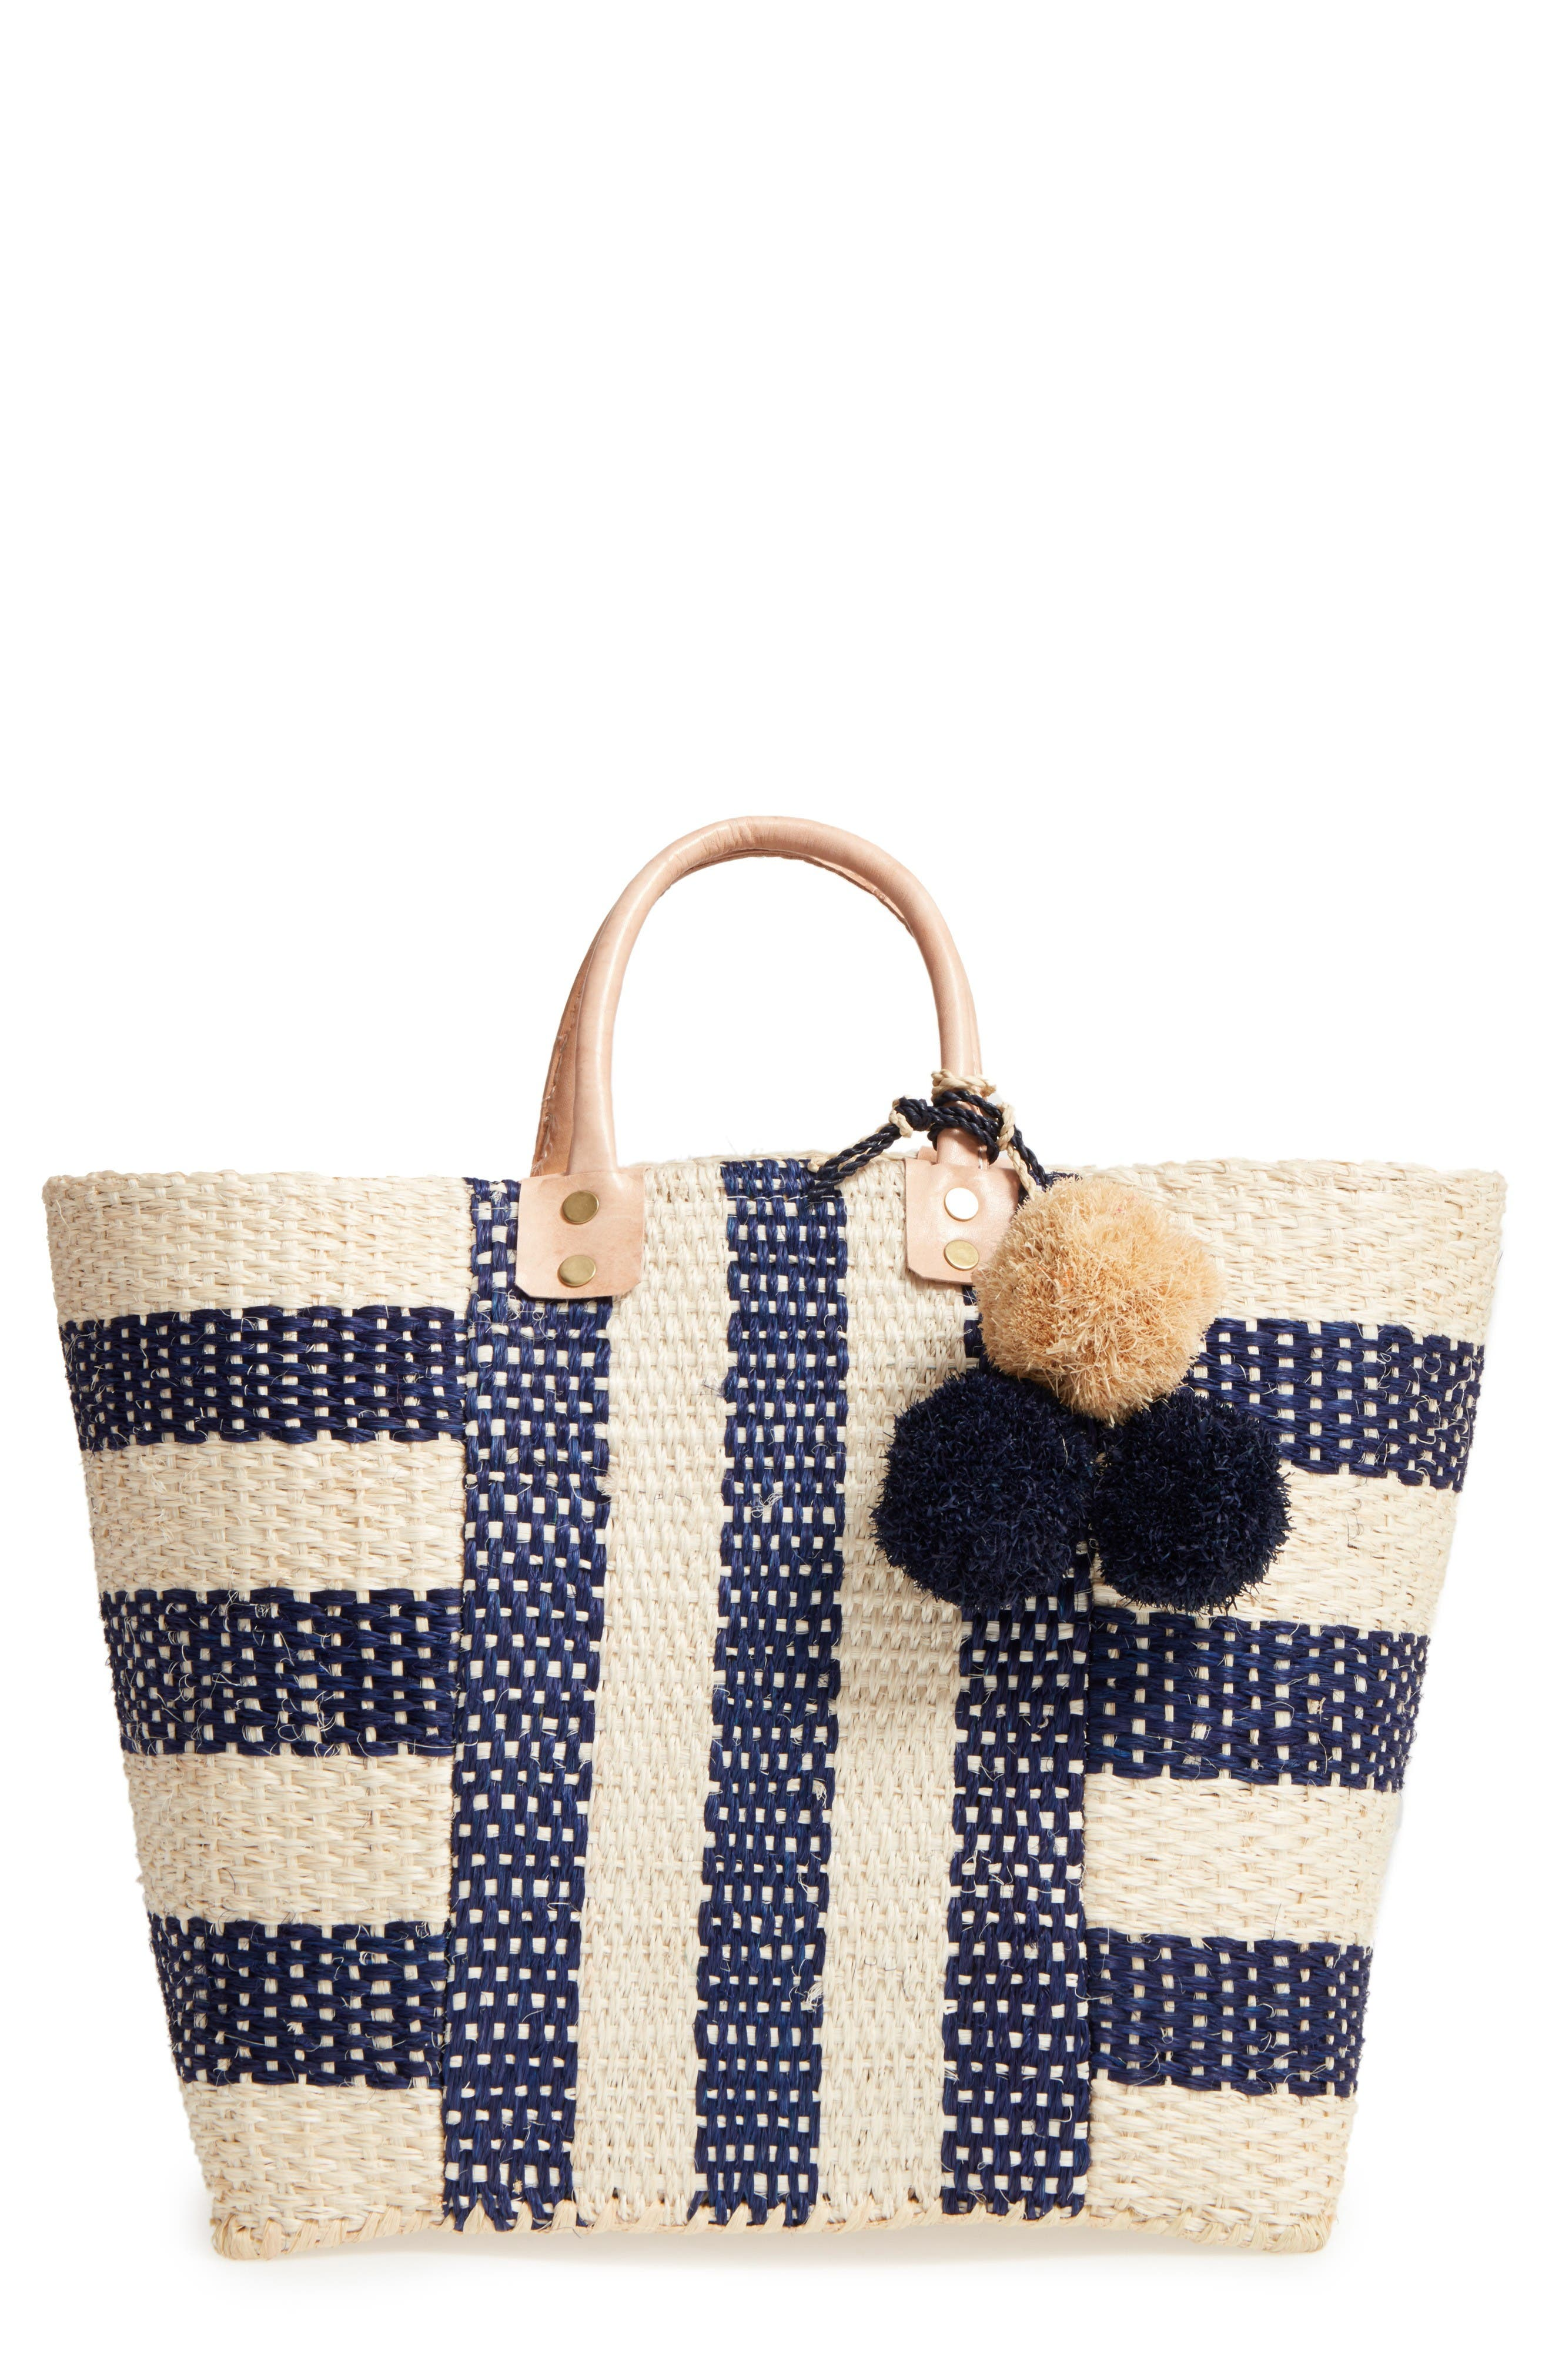 Alternate Image 1 Selected - Mar y Sol 'Collins' Woven Tote